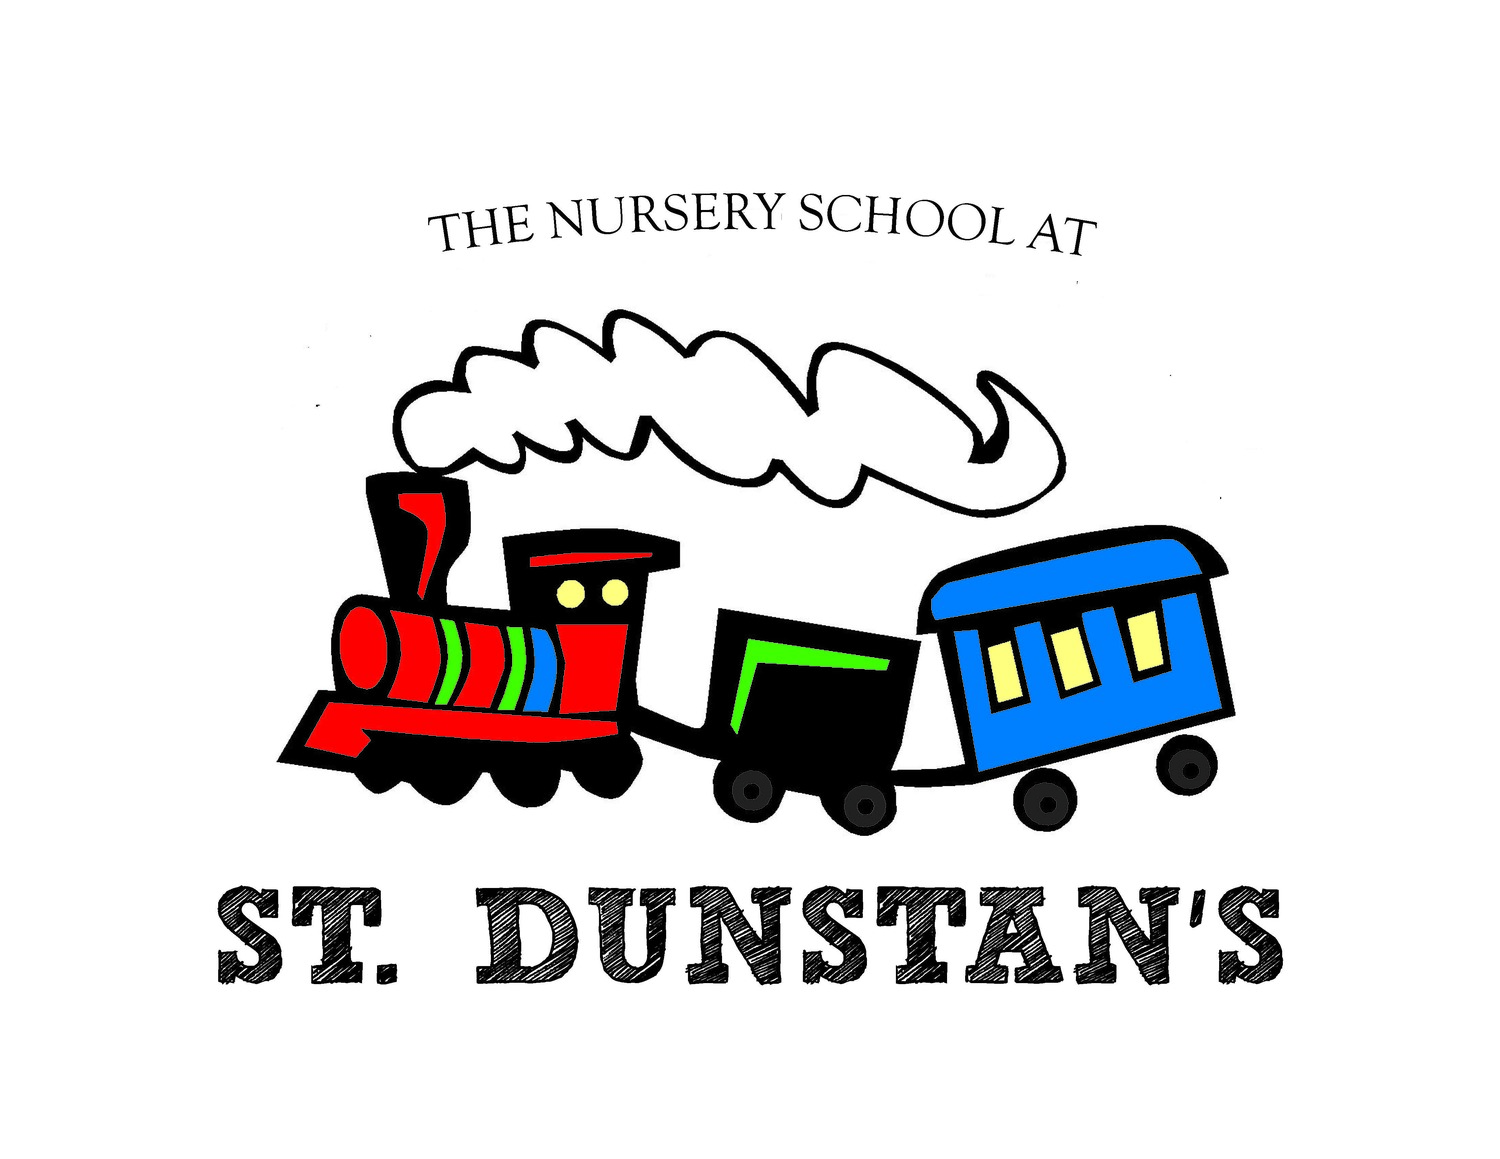 The Nursery School at St. Dunstan's